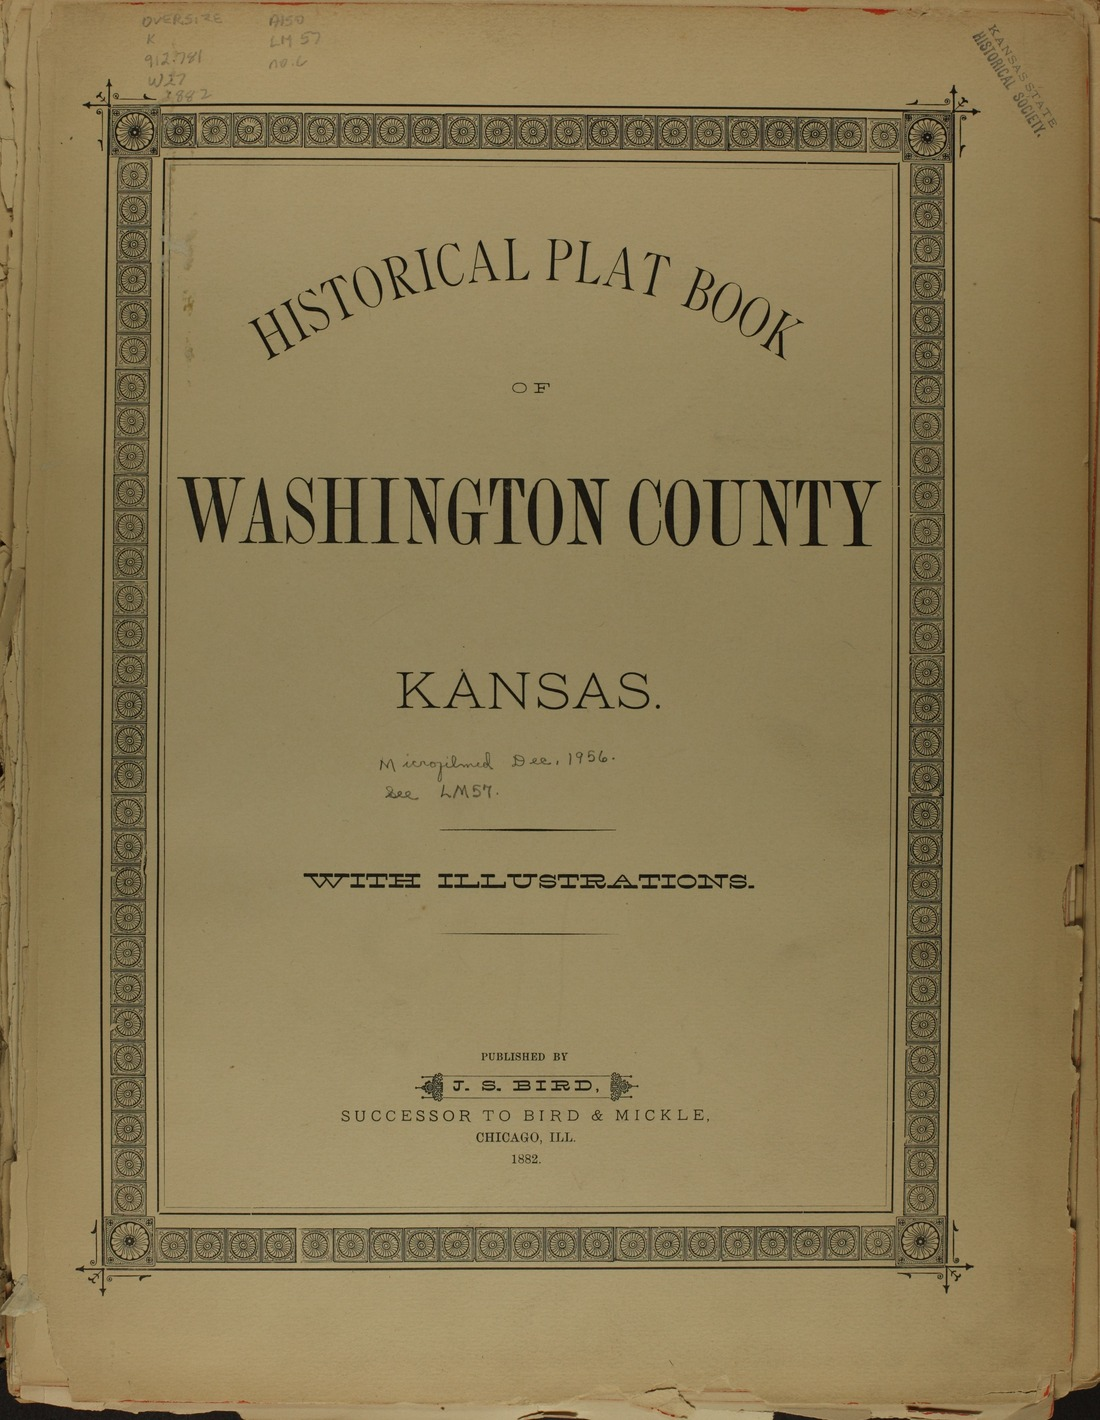 Historical plat book of Washington County, Kansas - Title page